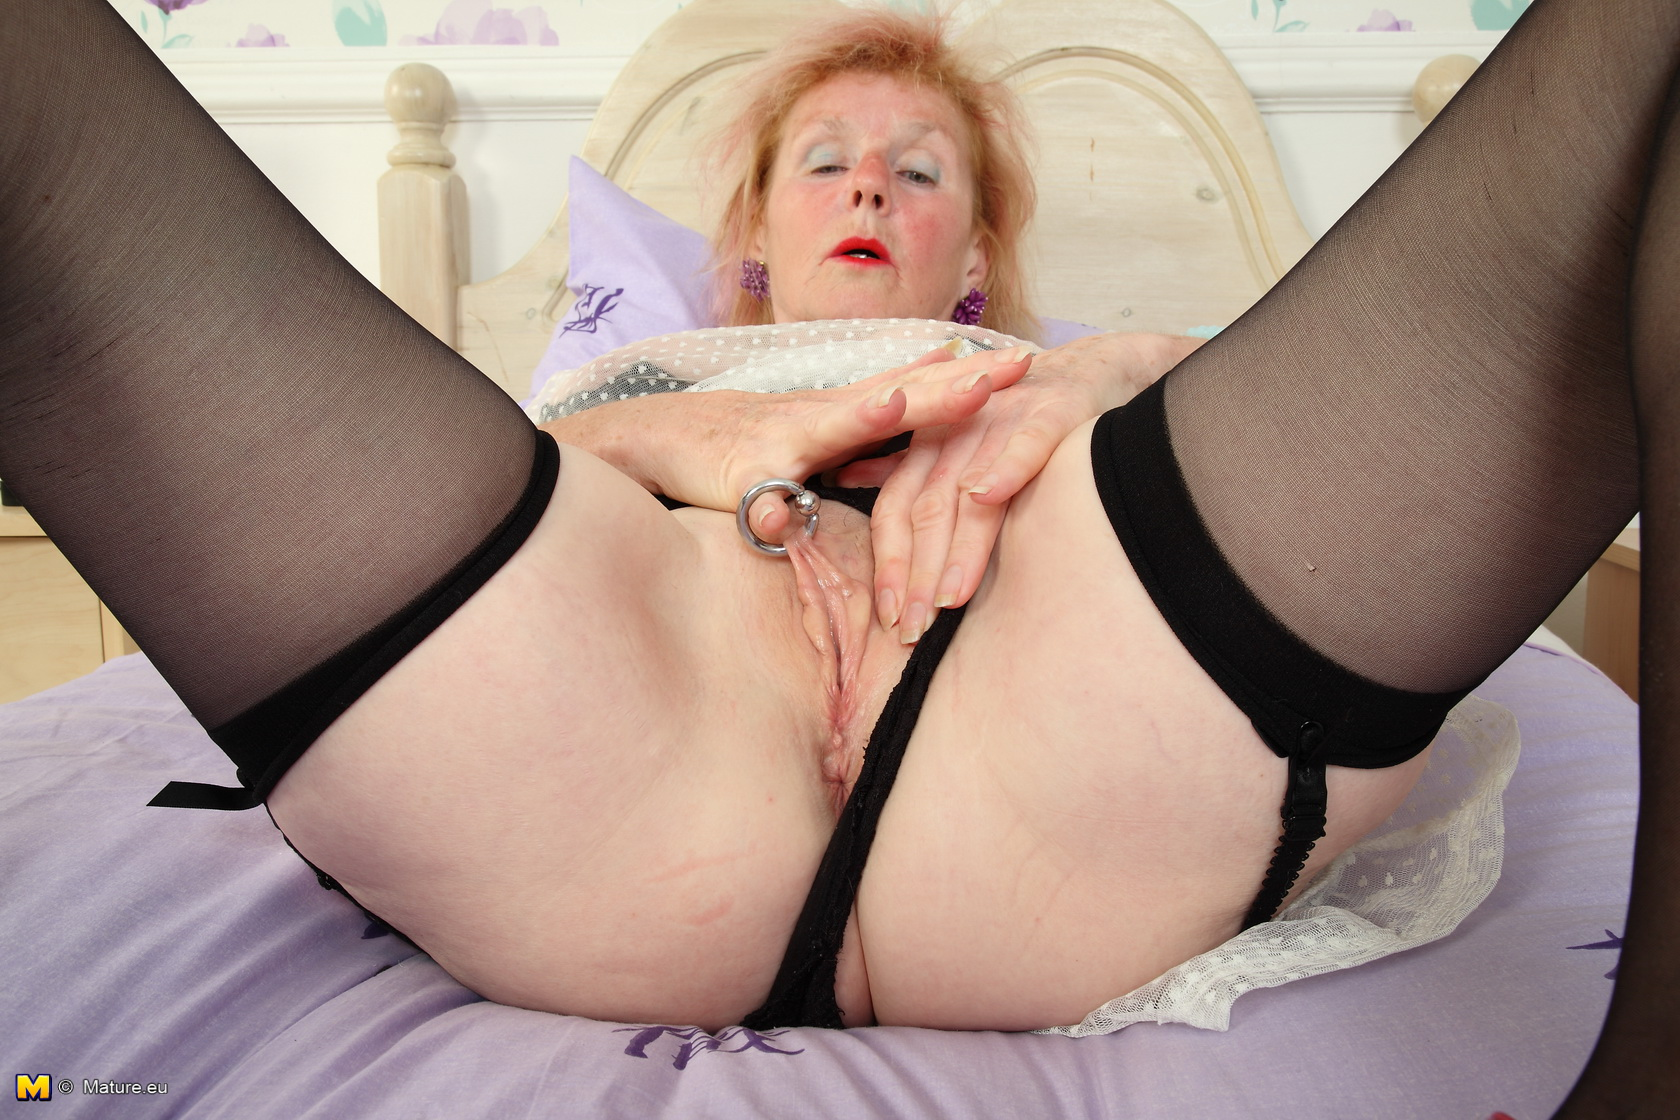 Retired Granny comes with a Surprise hidden under her skirt Hurry up !